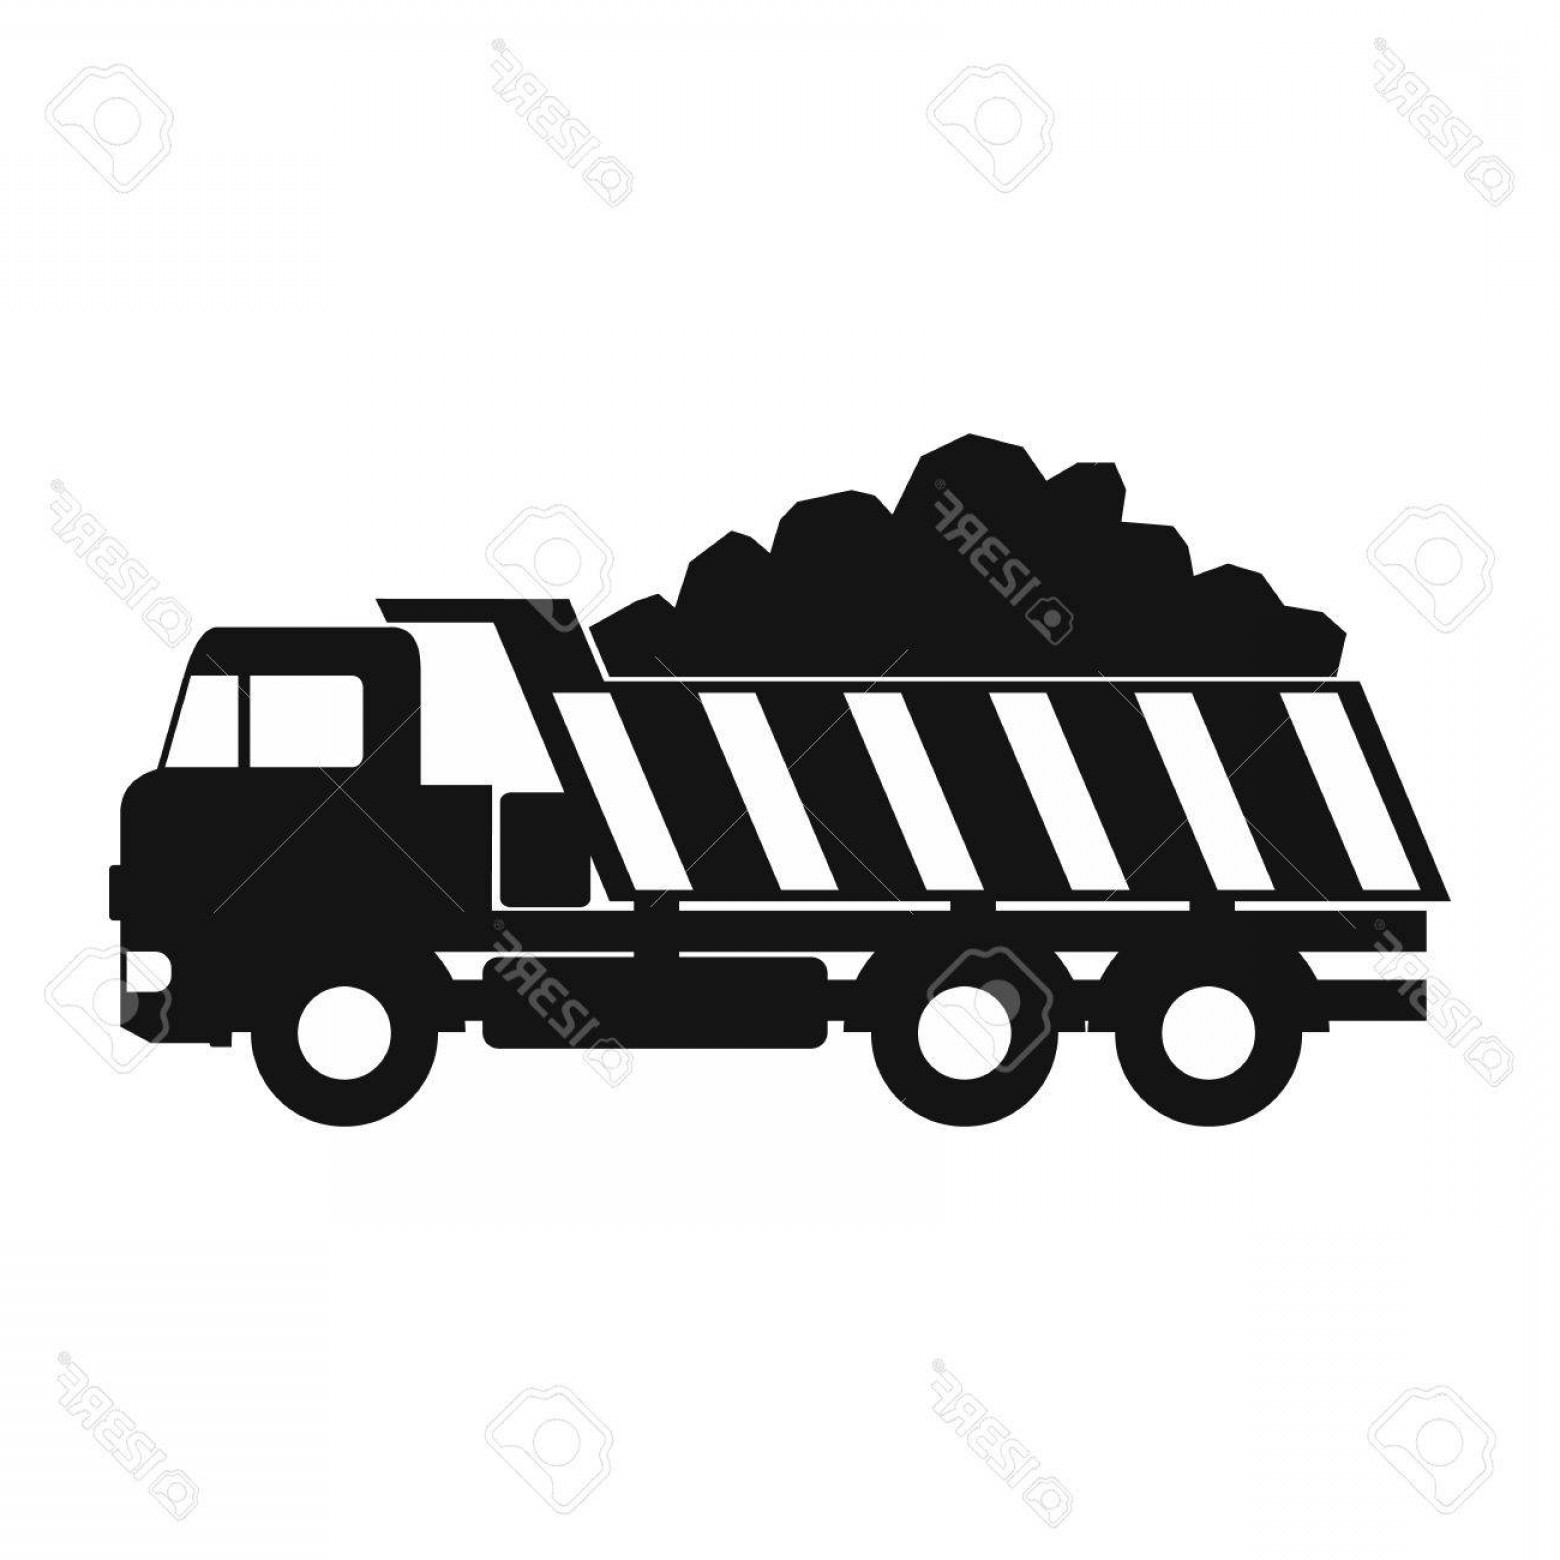 Dump Truck Vector Black And White: Photostock Vector Dump Truck Black Simple Icon Isolated On White Background